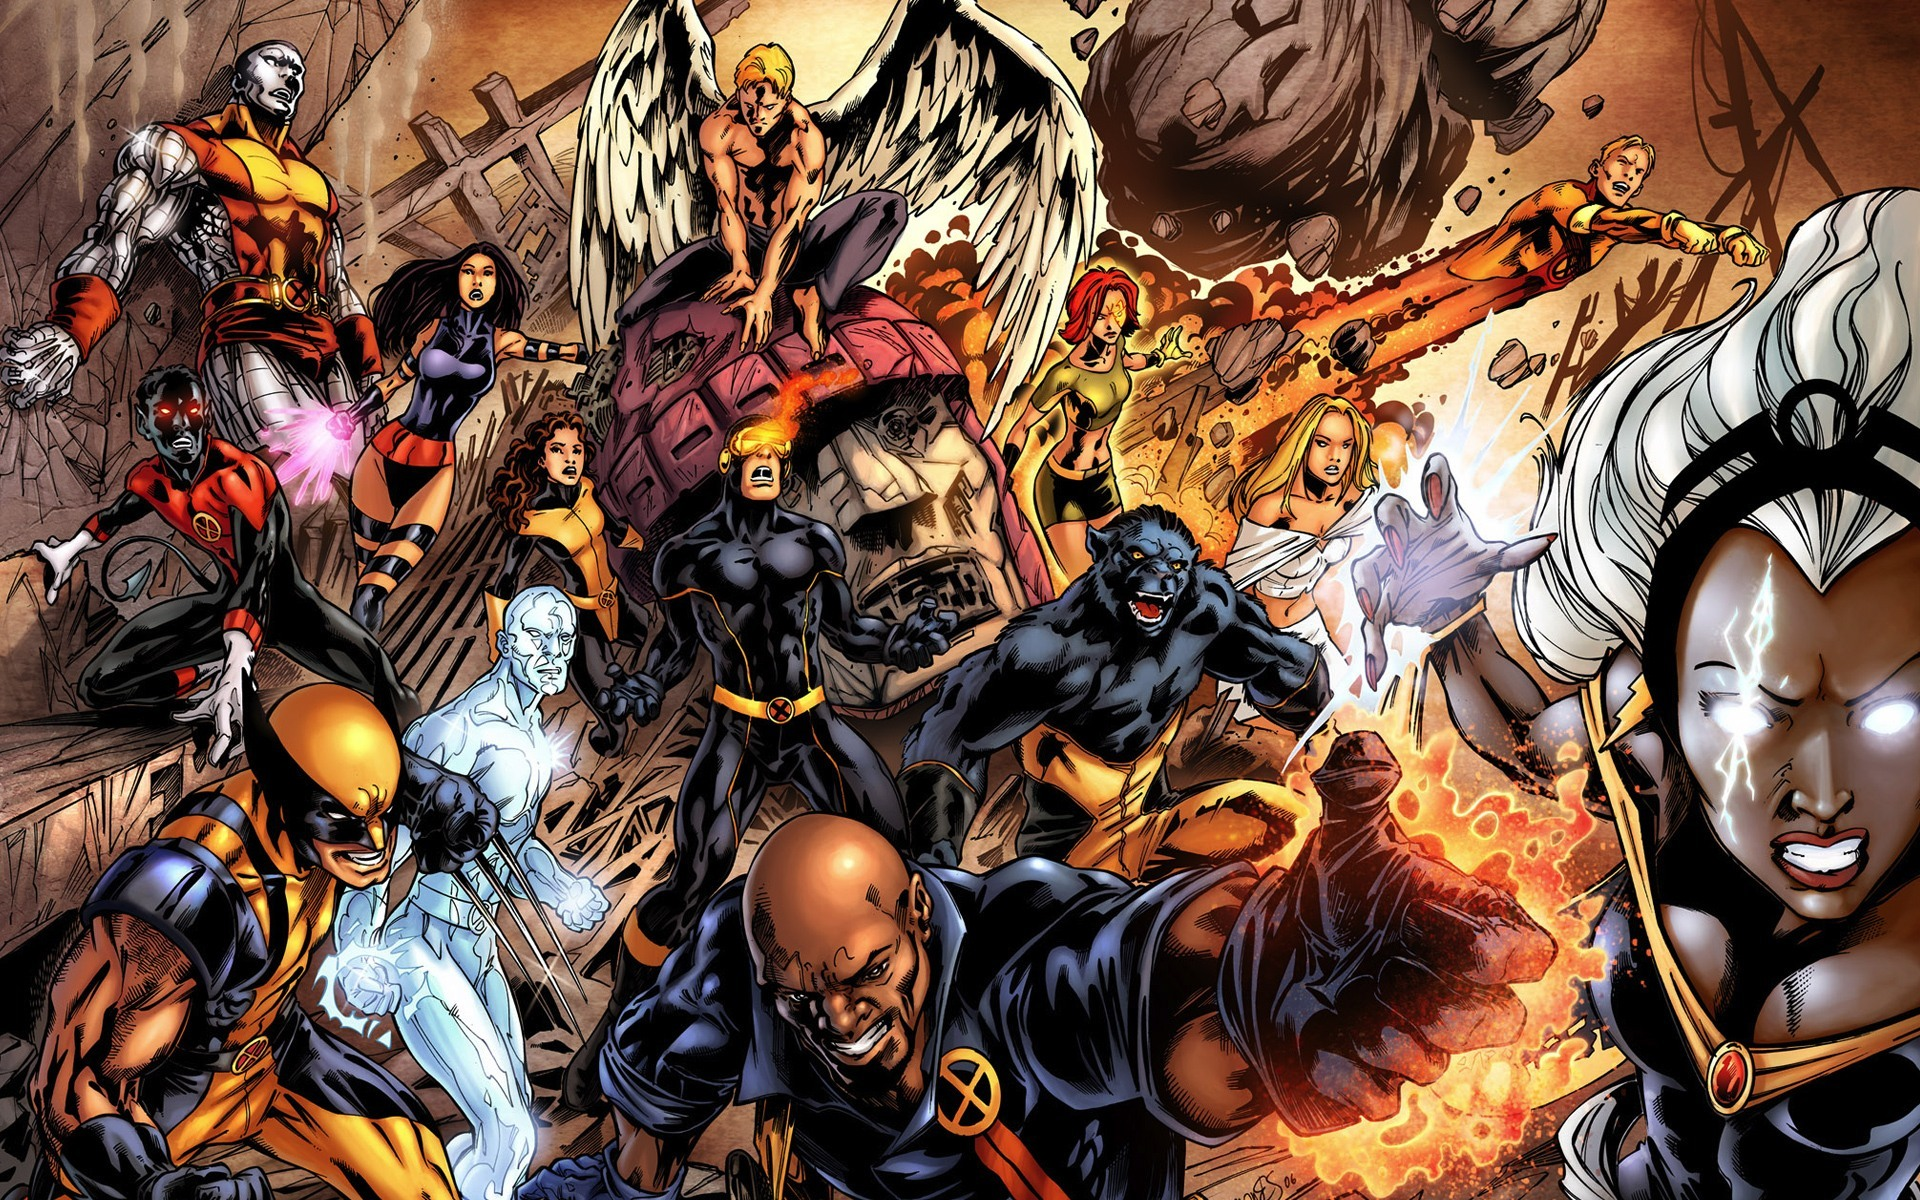 angels comics X-Men wolverine HD Wallpaper